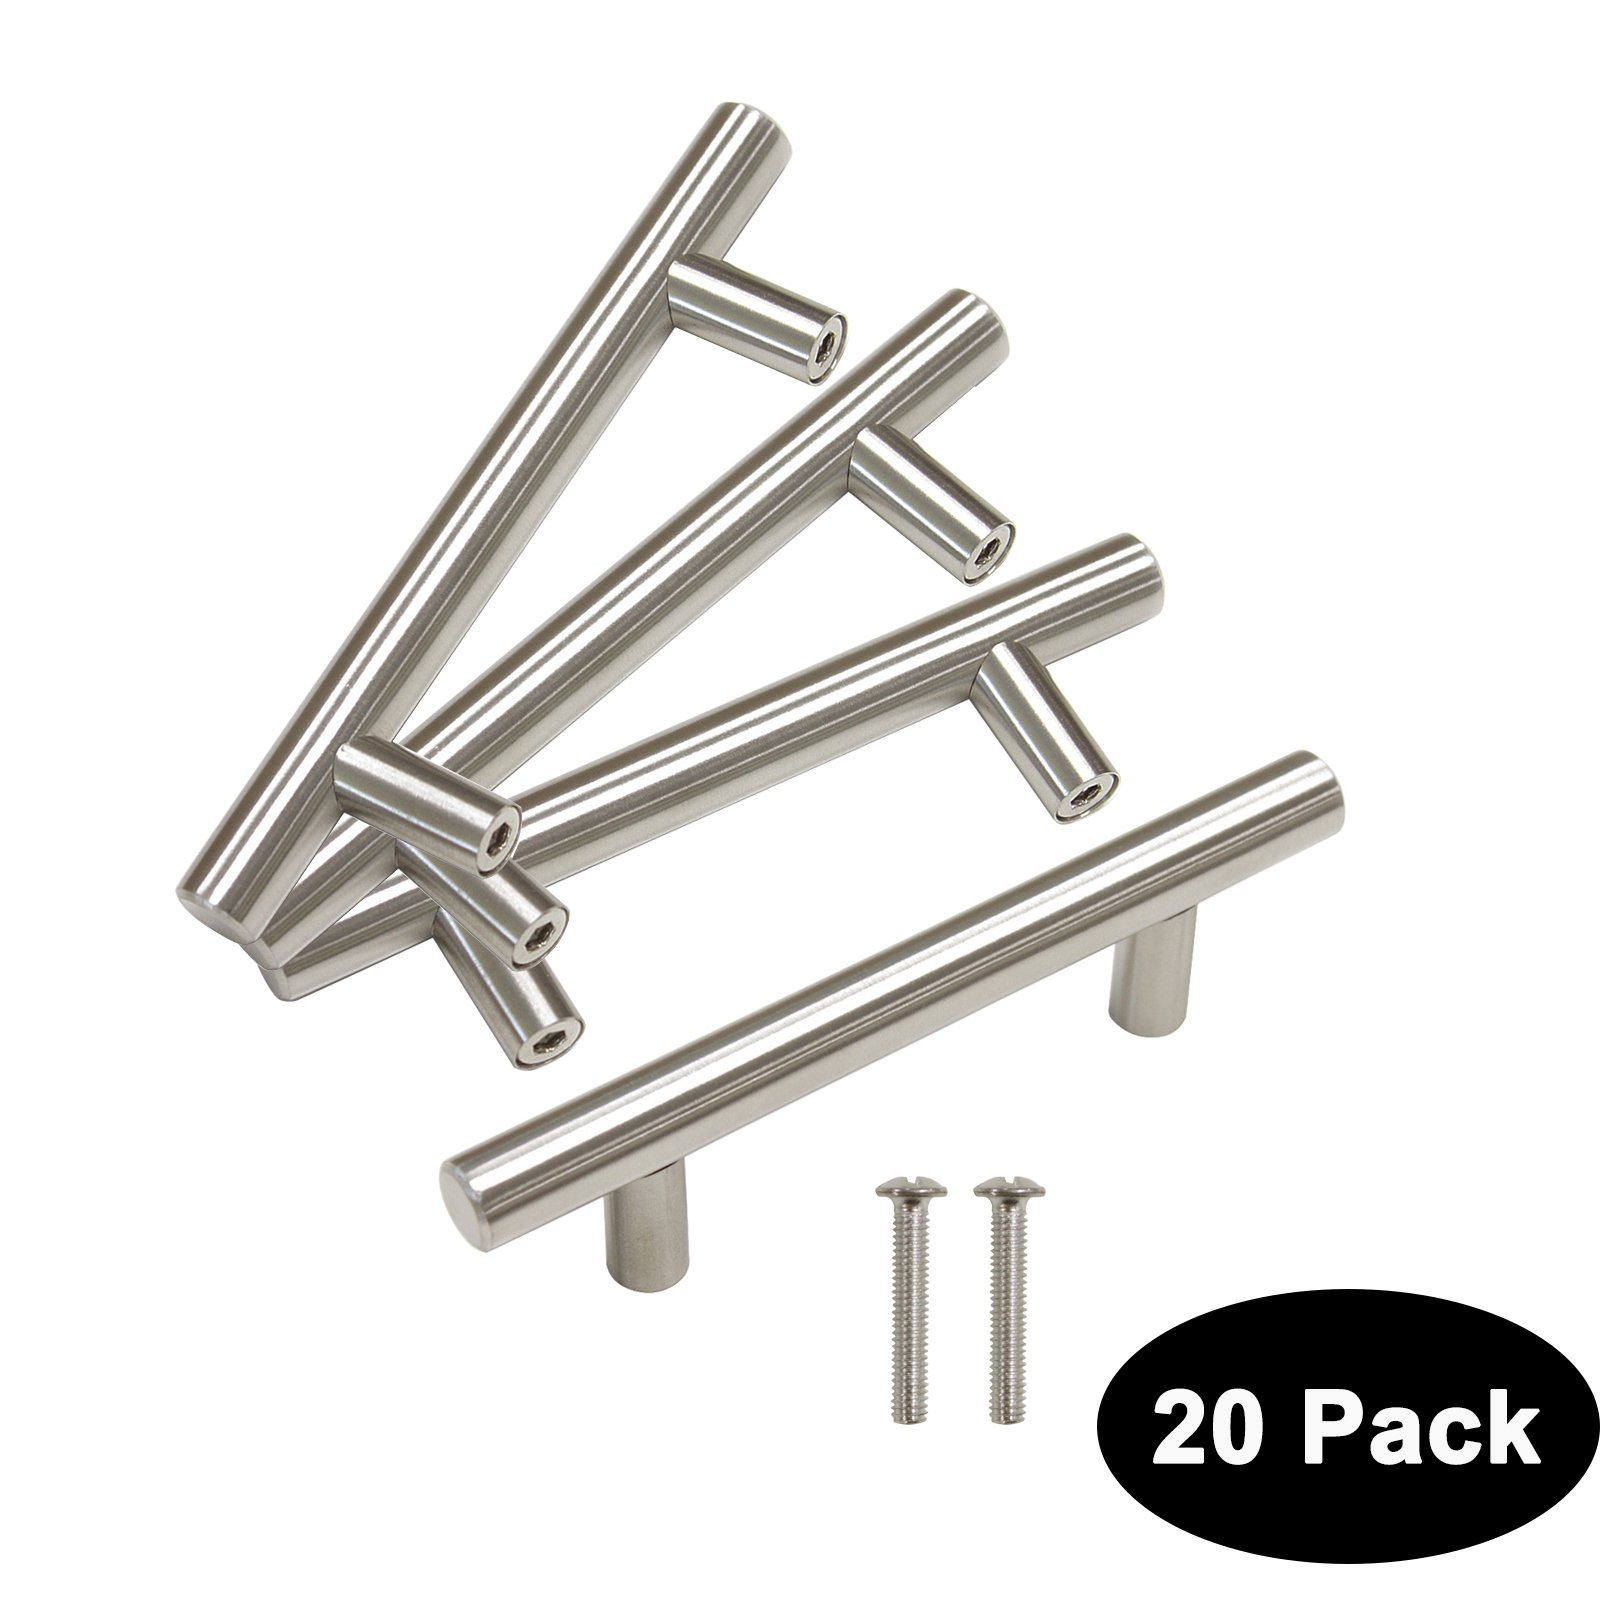 20 pack 76mm(3inch) Hole Centers Stainless Steel Kitchen Cabinet Door Handles and Pulls European Style Cabinet Knobs Length 127mm(5inch) Brushed Nickel